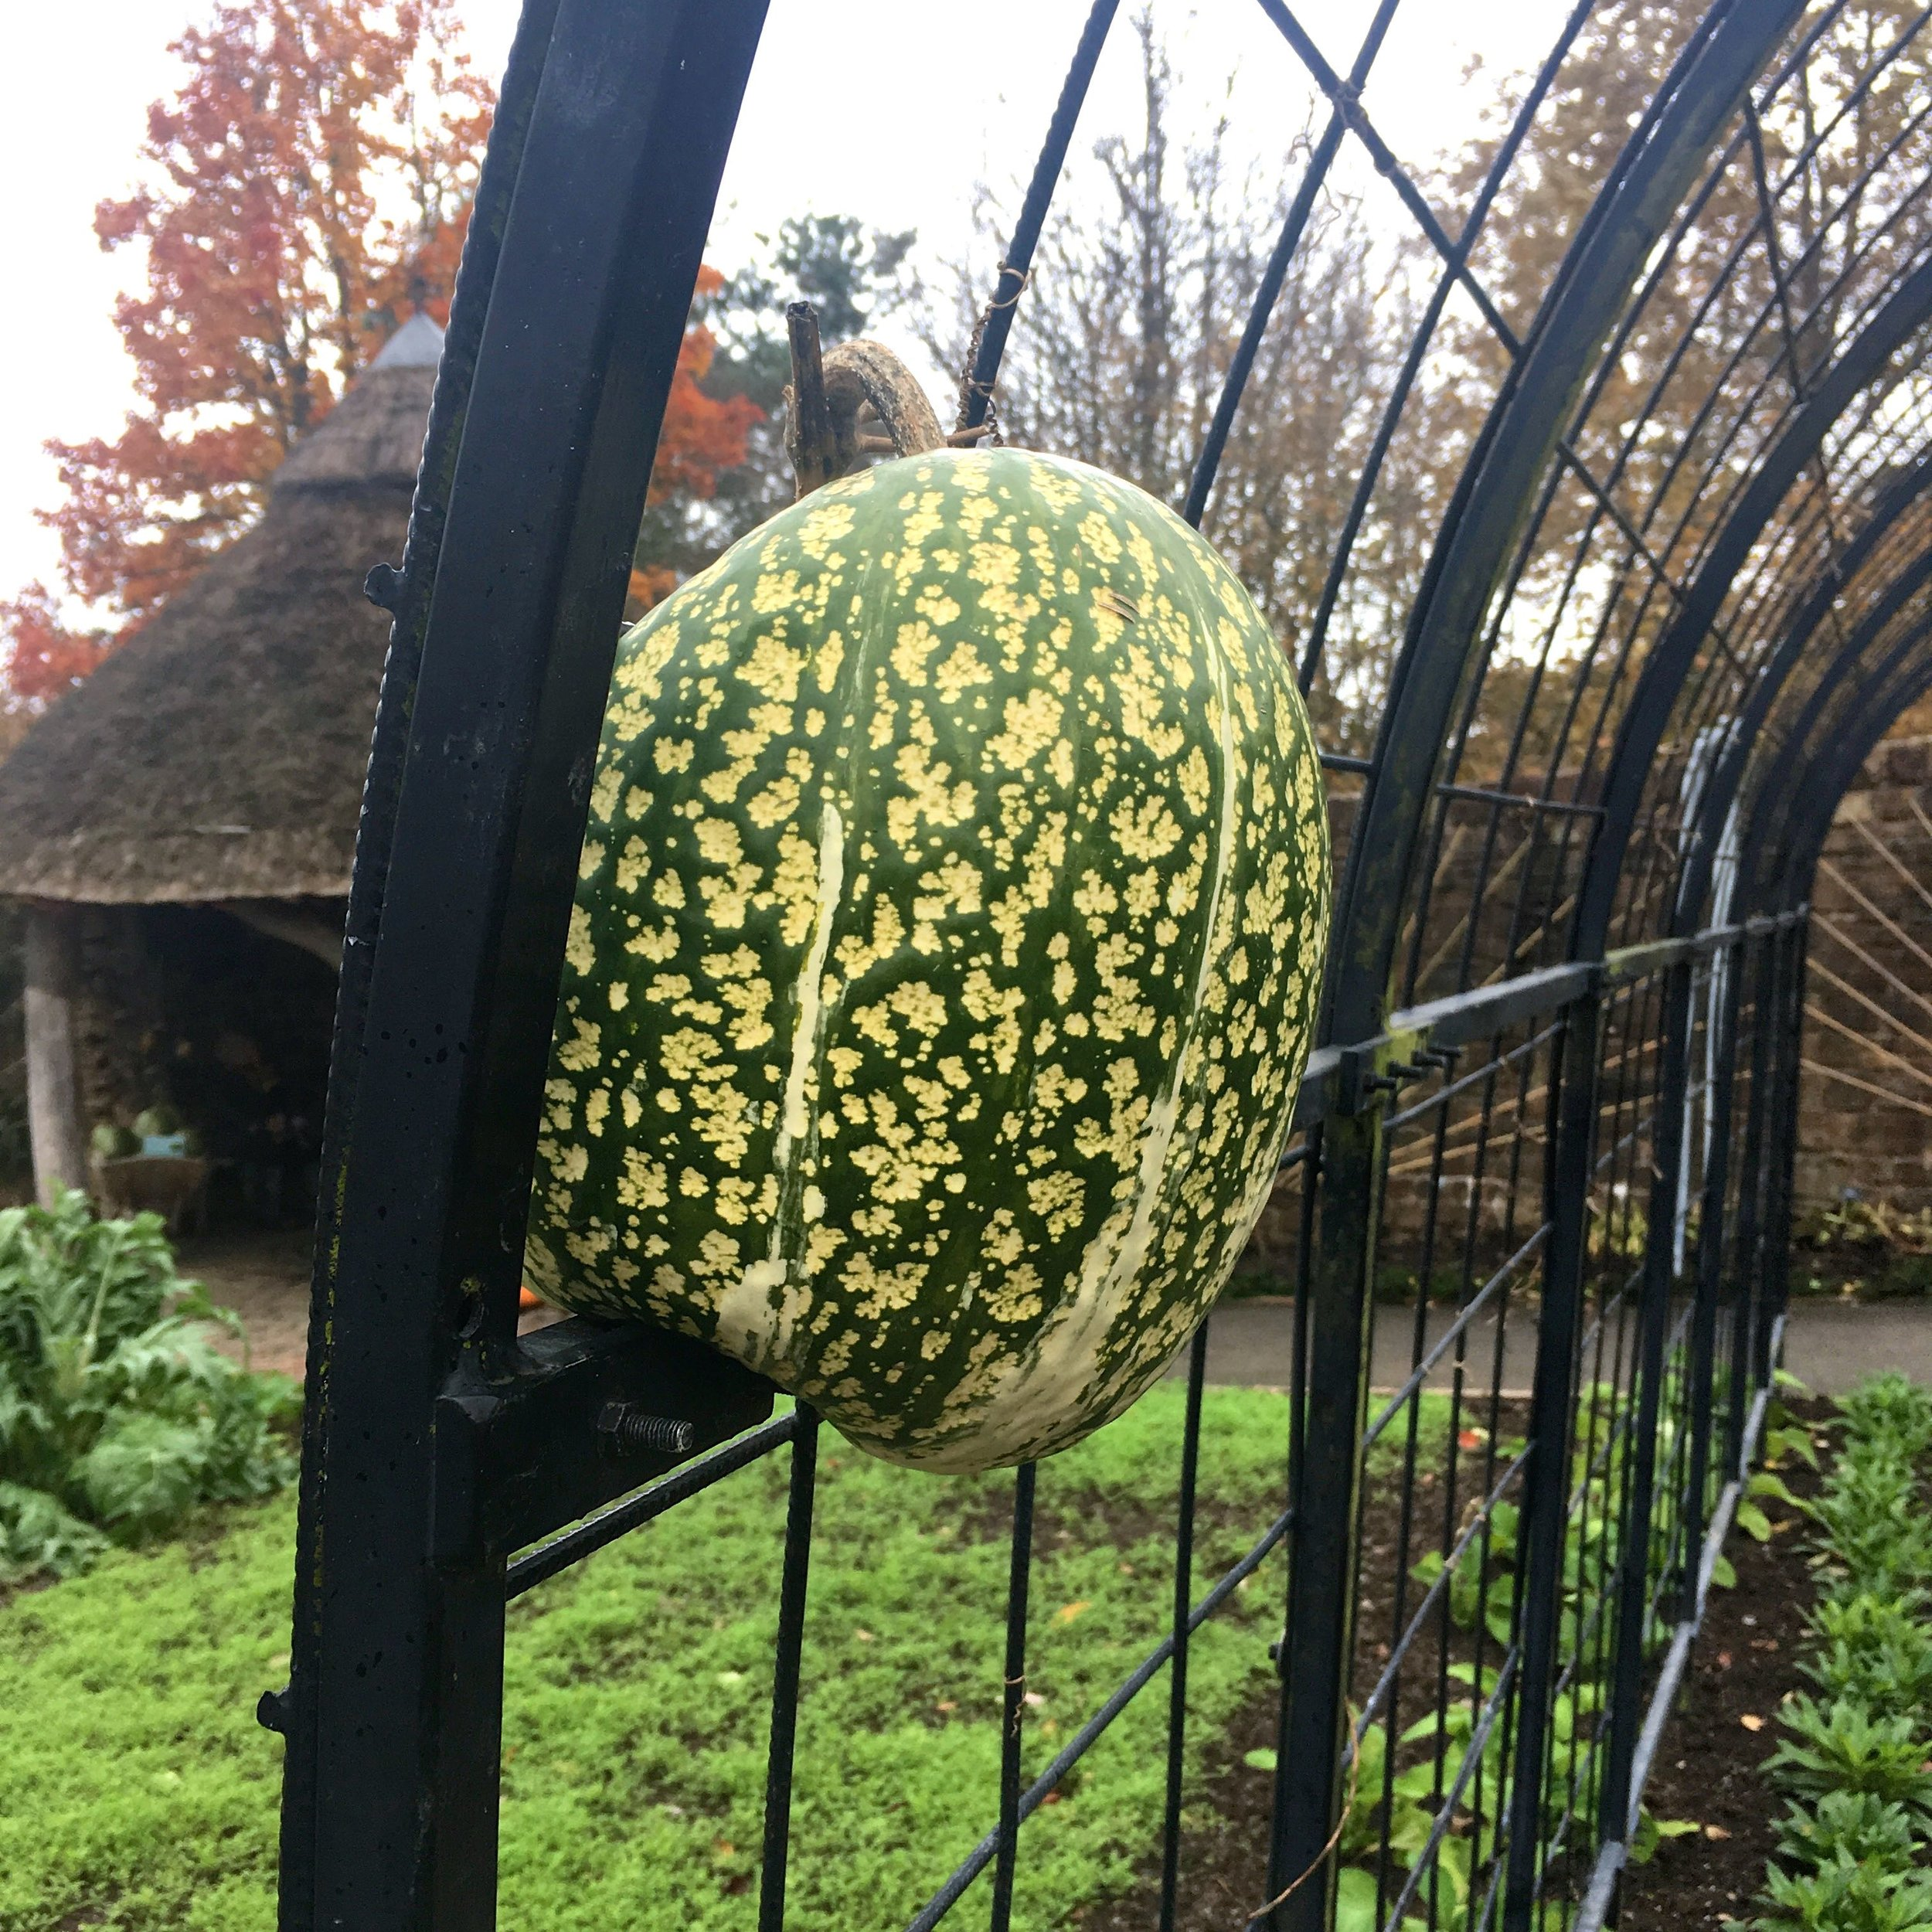 One pumpkin which has grown through the archway remains